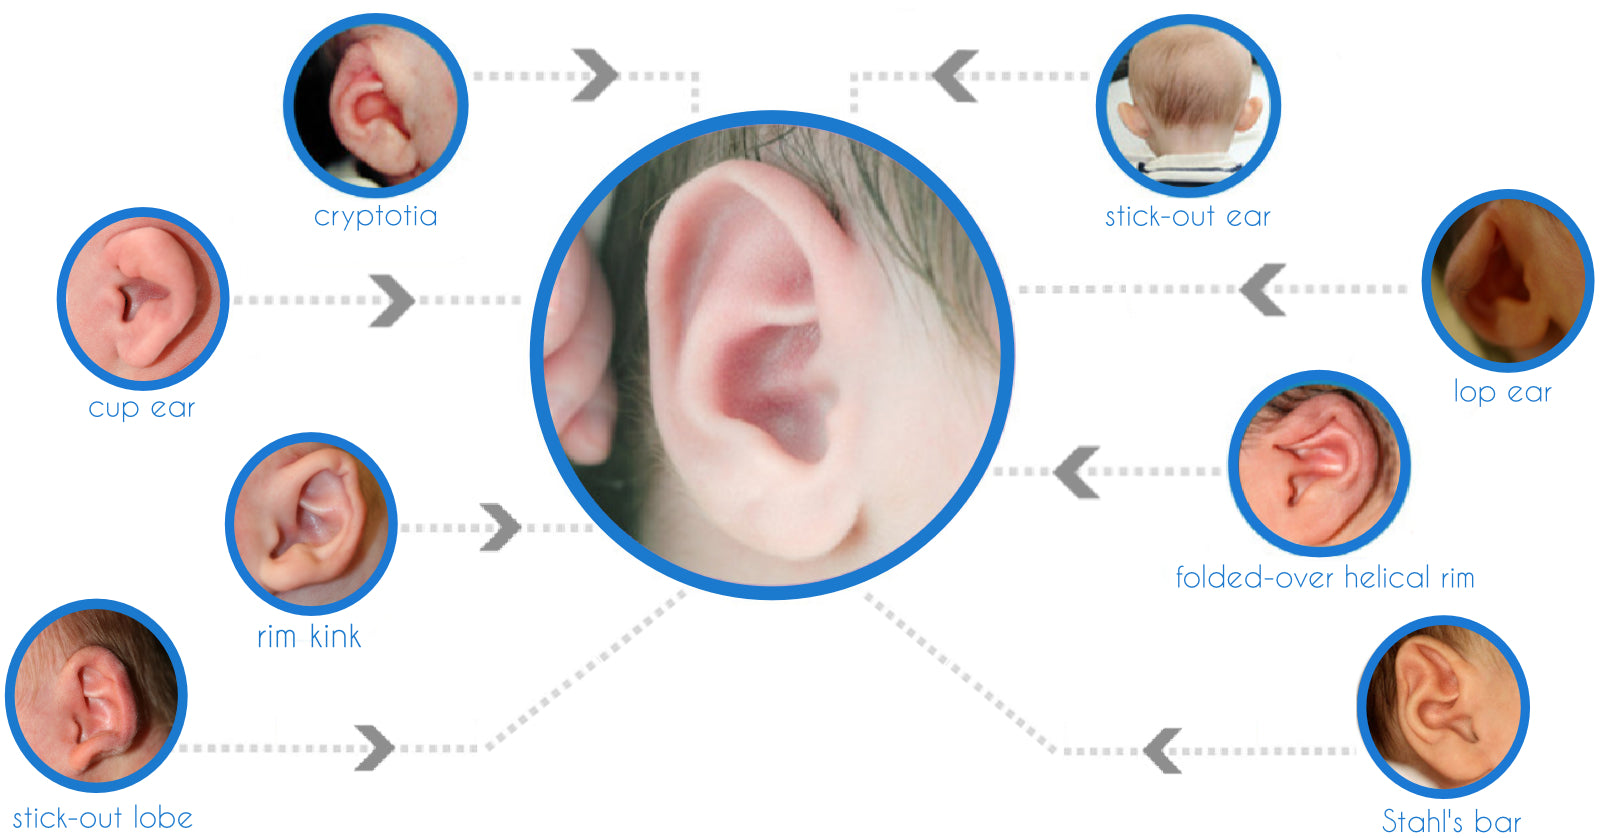 What Ear conditions can Ear Buddies treat? Rim Kink, Stick Out ears, Stahl's Bar, Cup Ear, Rim Kink e.t.c